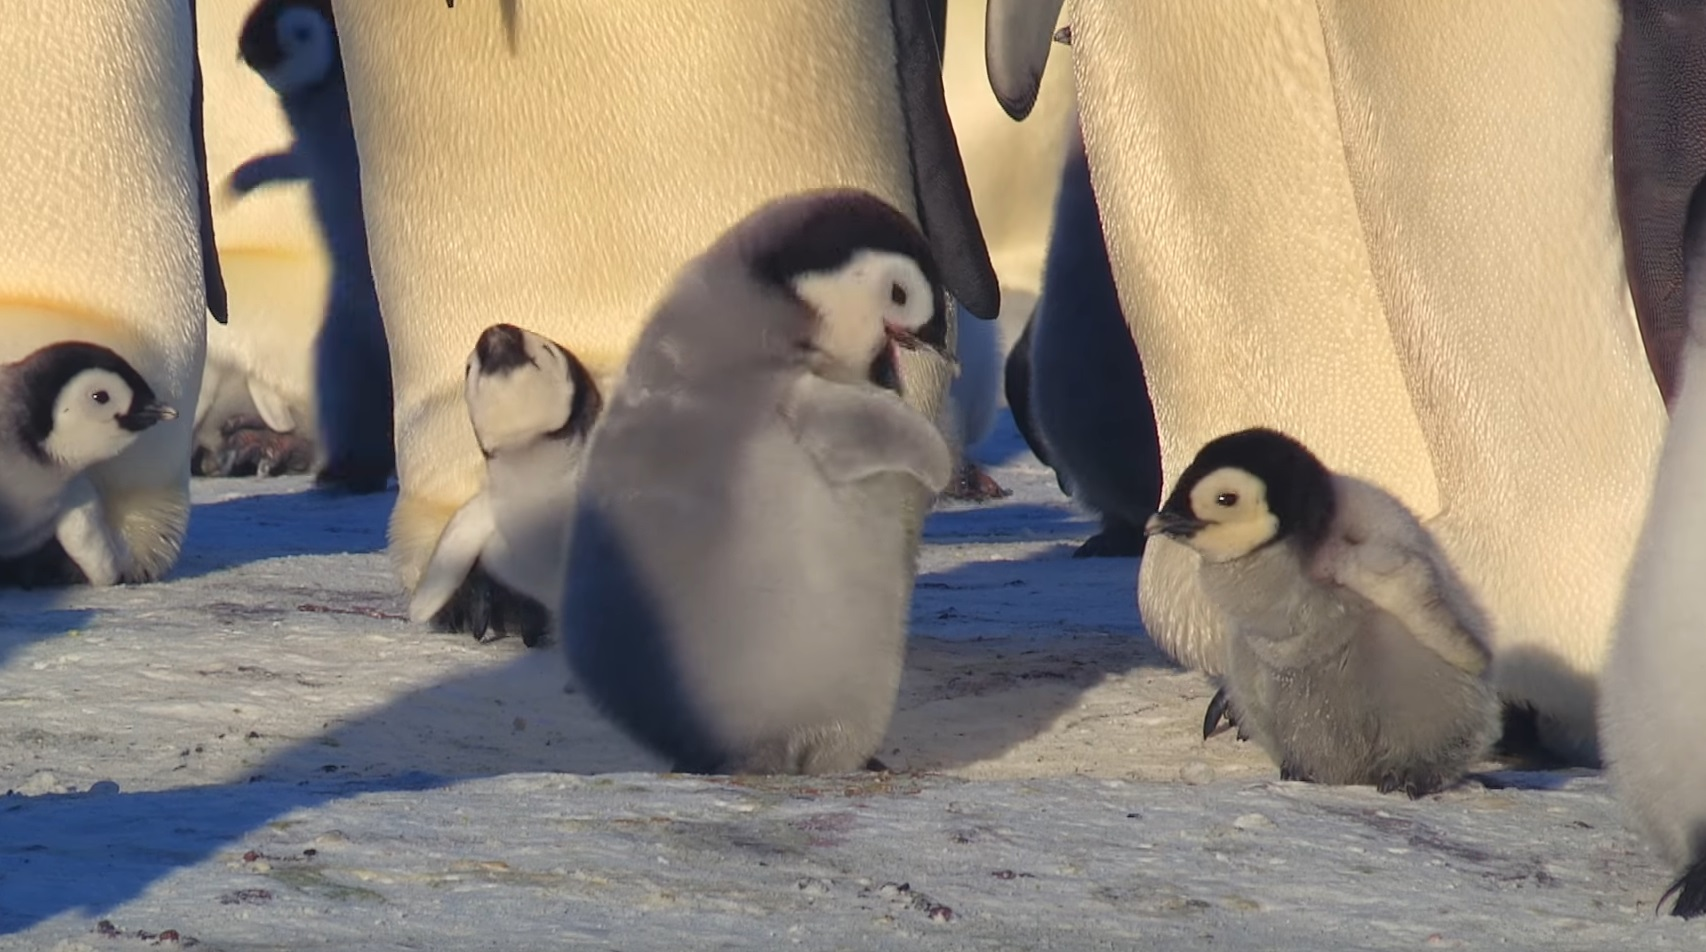 Cute Penguin Chick Tries To Make Friends